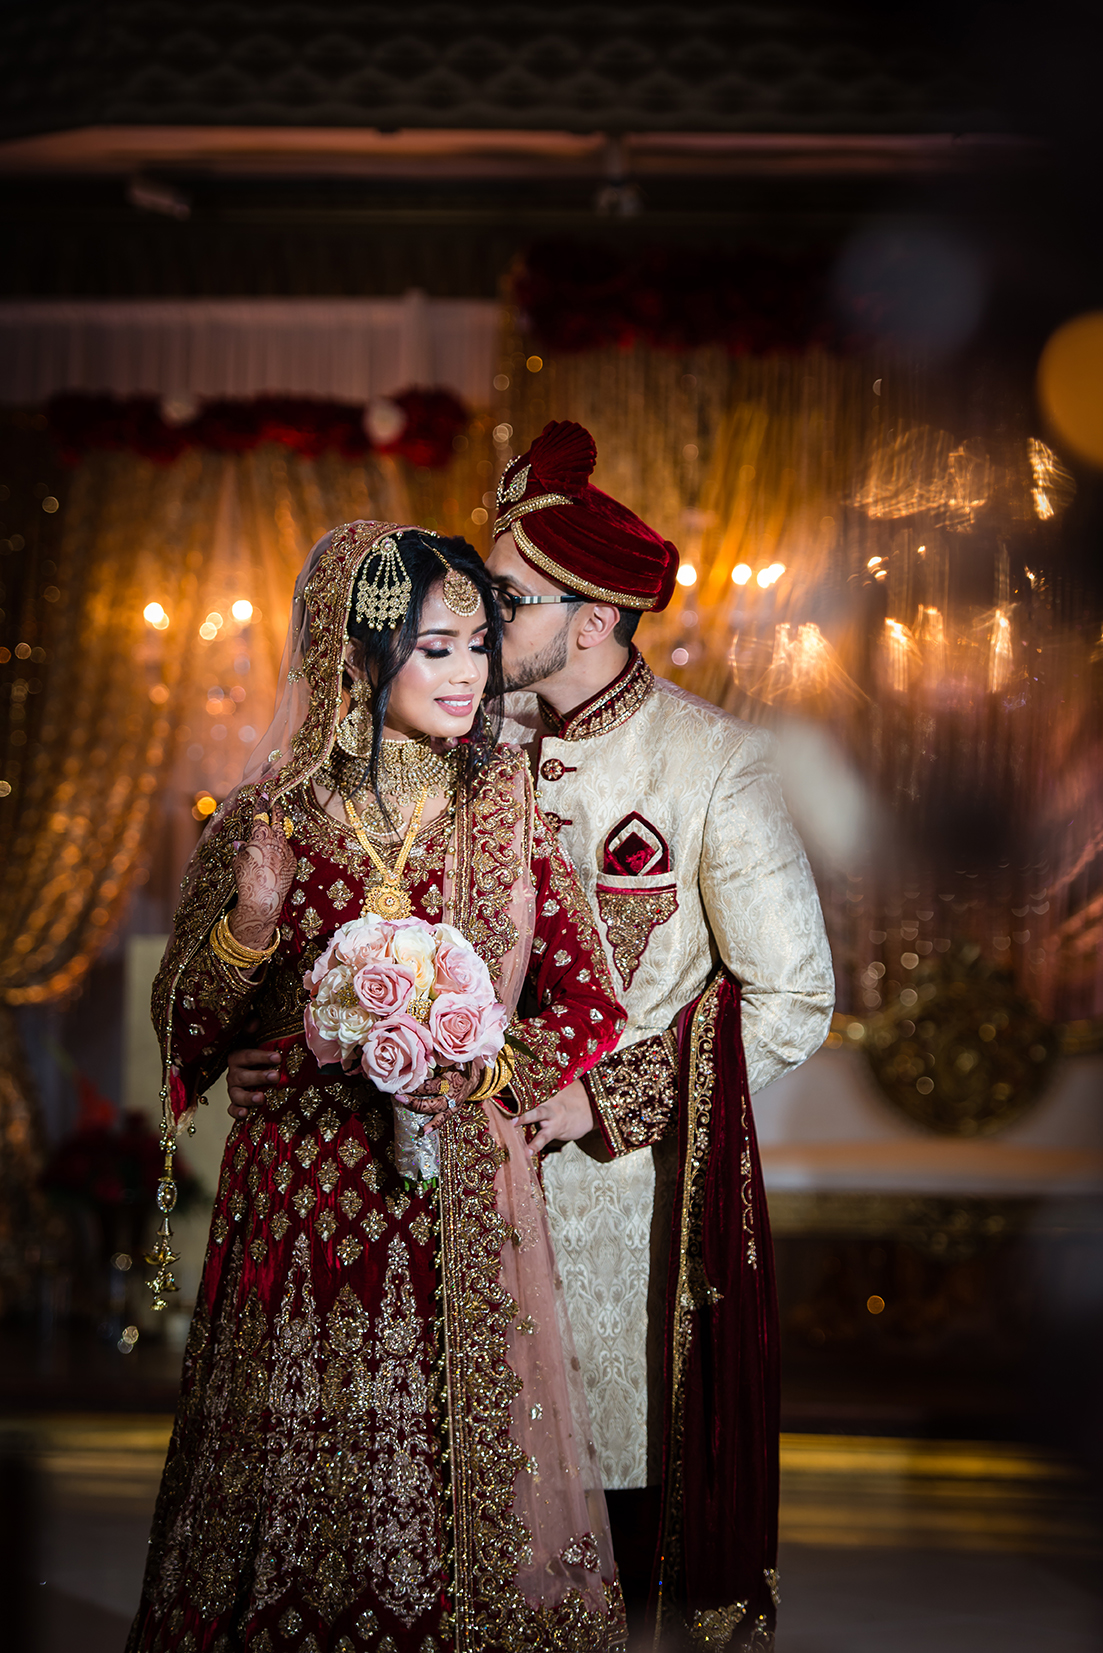 south_asian_wedding_photography_dhoom_studio_new_york89 SOUTH ASIAN WEDDINGS